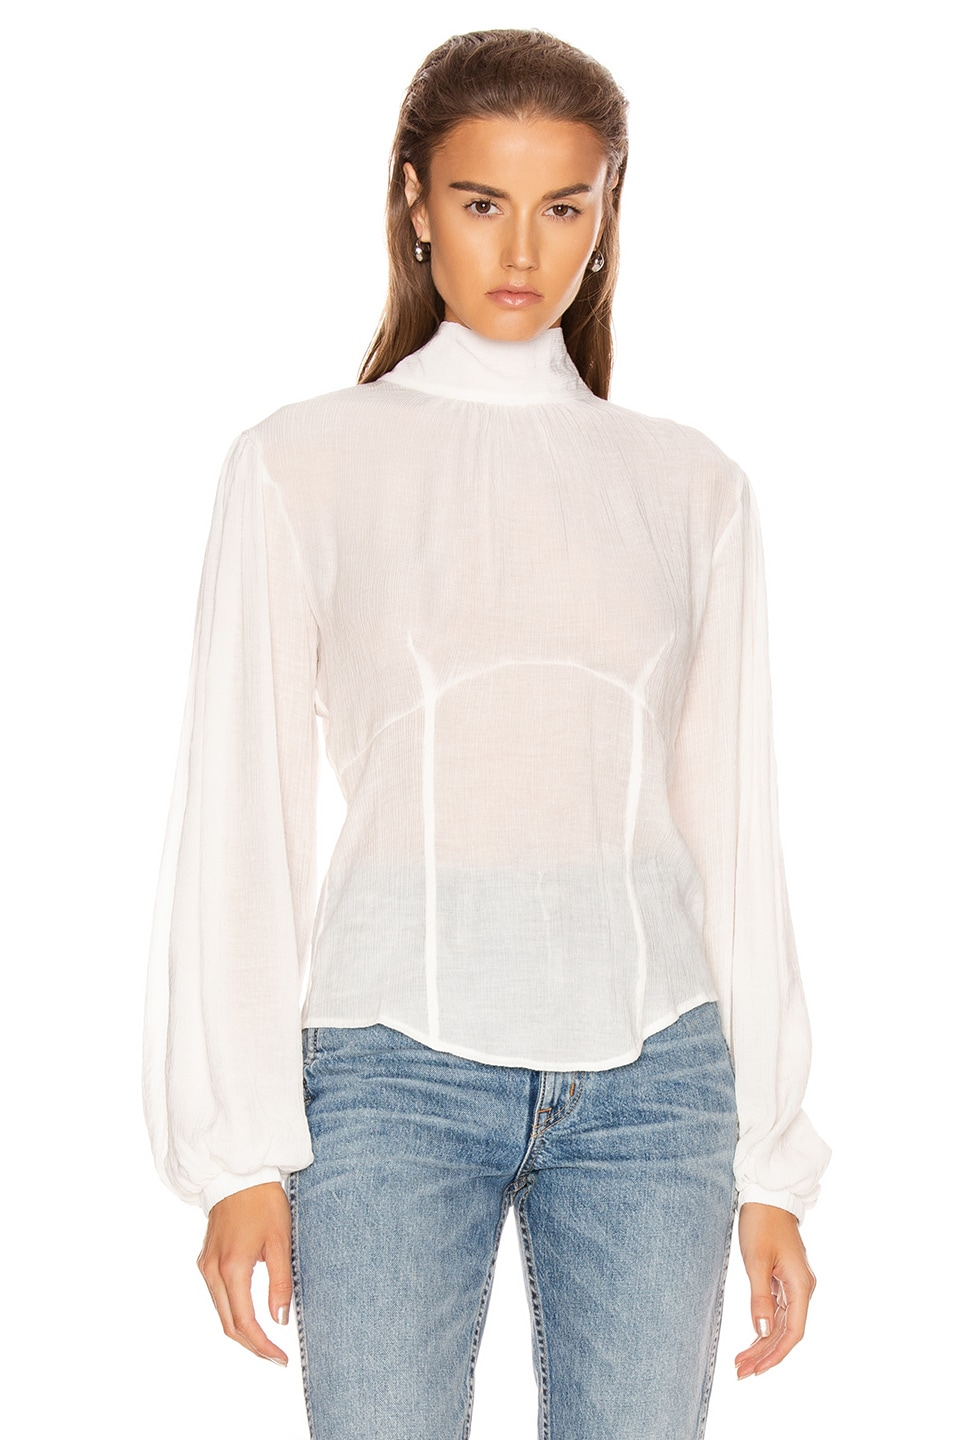 Image 2 of The Range Vapor Voile Corset Volume Sleeve Top in White